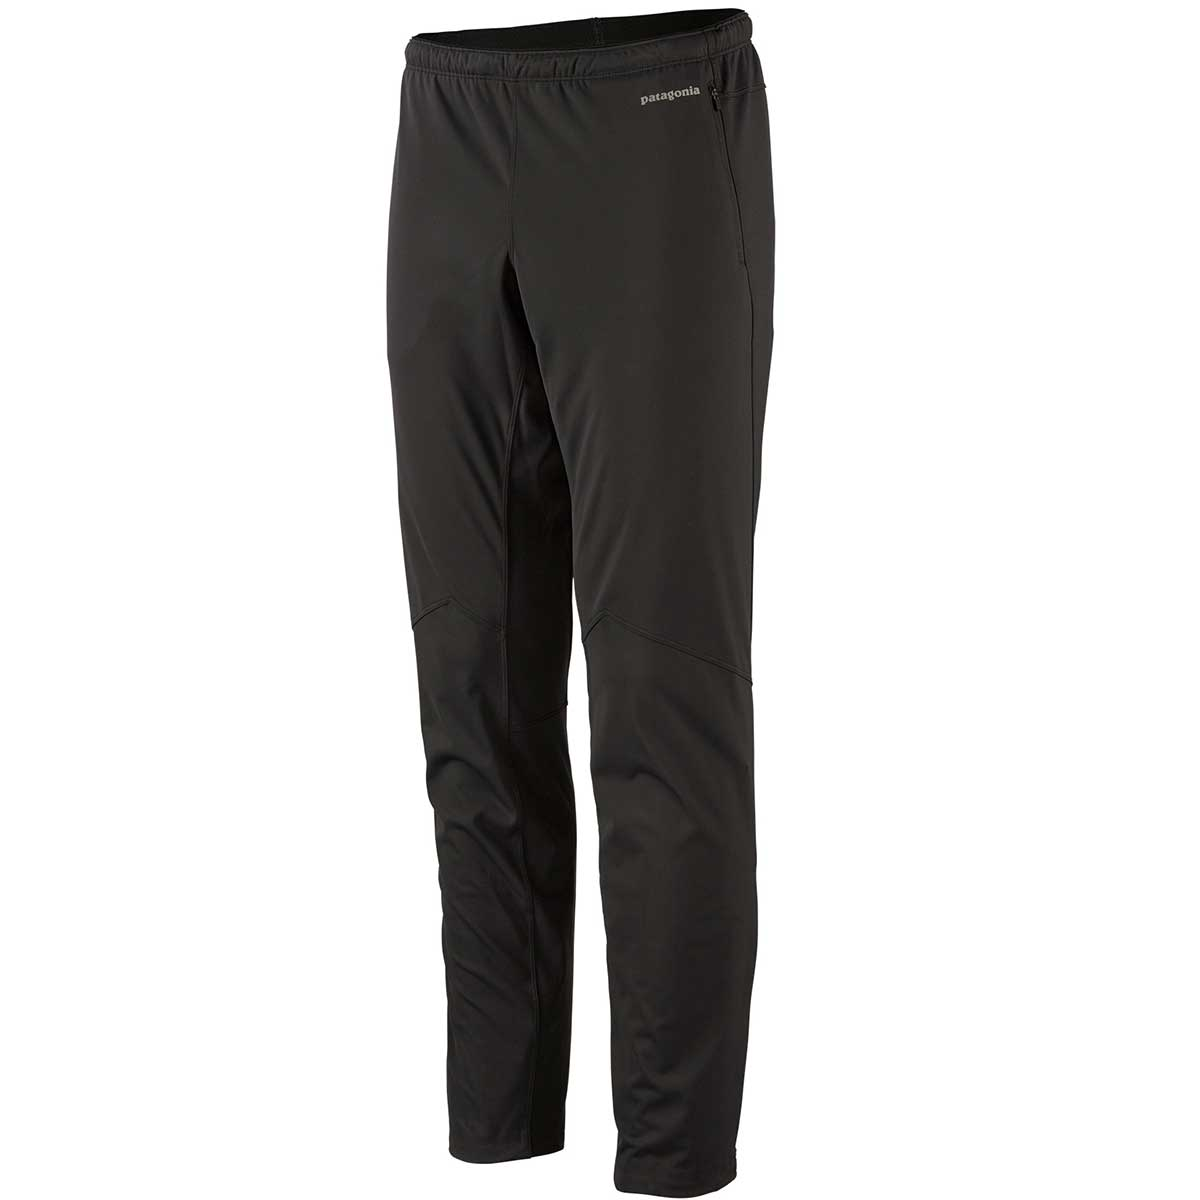 Patagonia men's Wind Shield Pant in Black front view